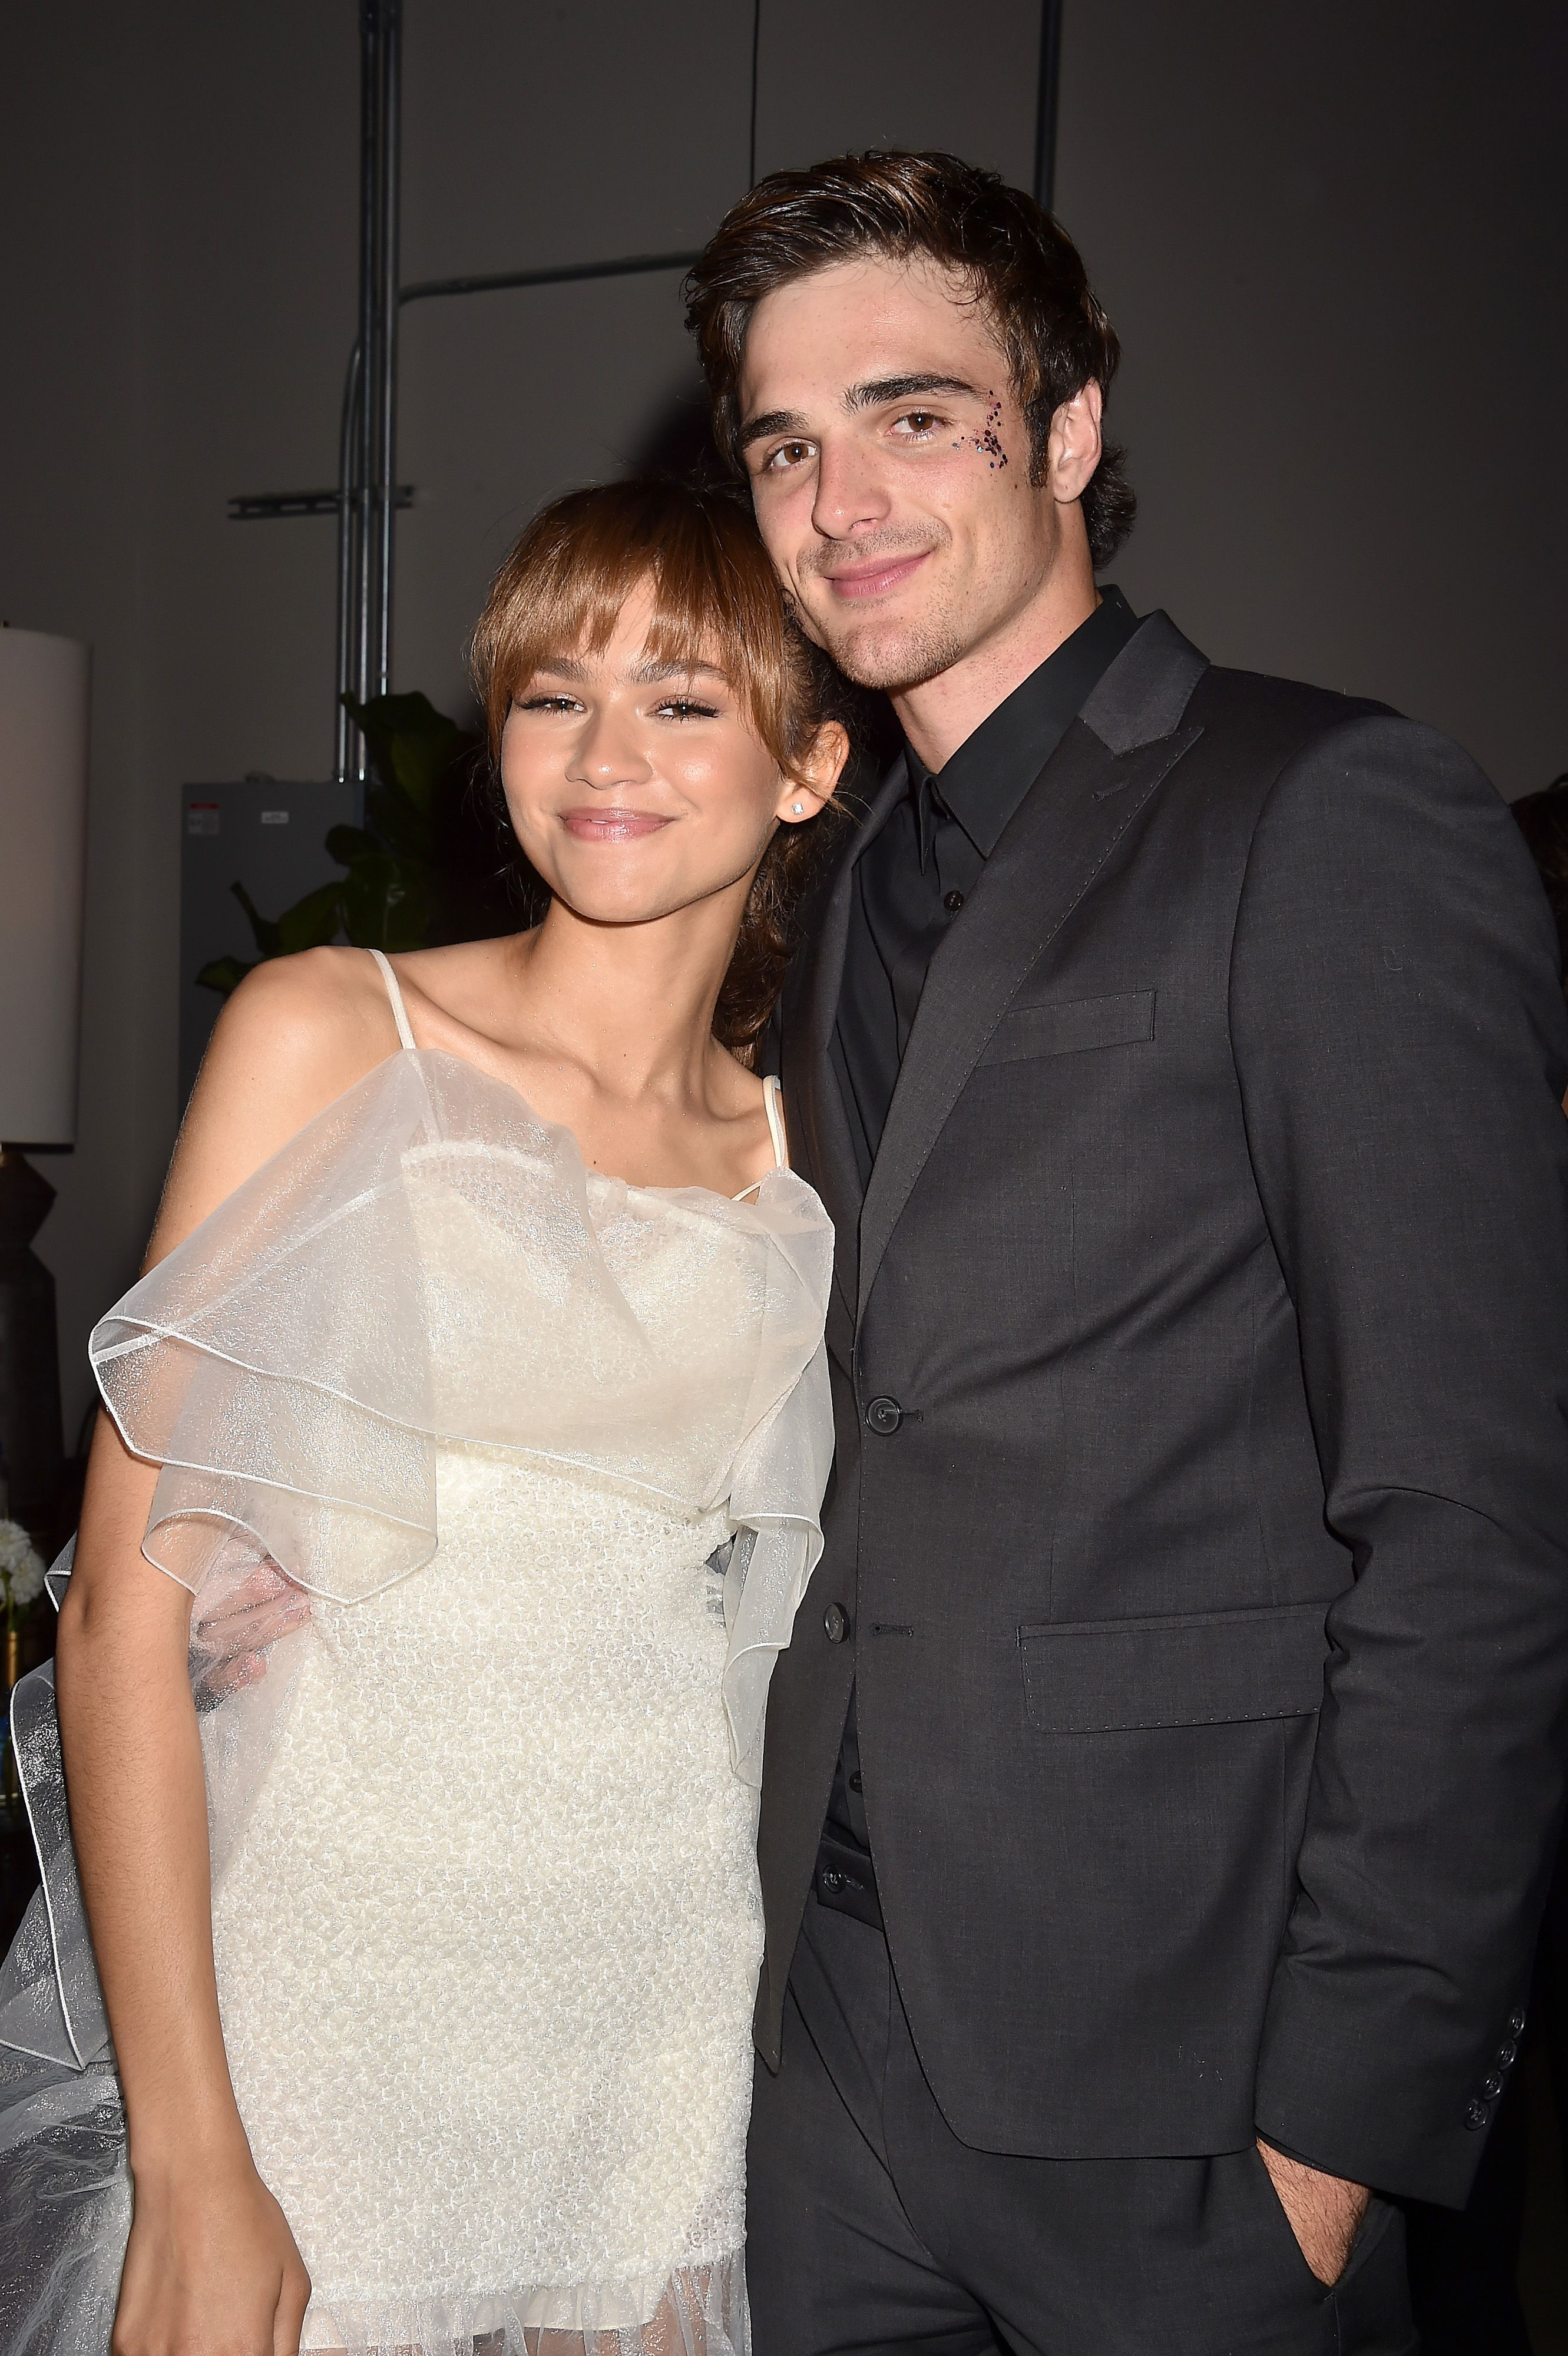 Jacob Elordi is rumored to be dating Zendaya / Getty Images